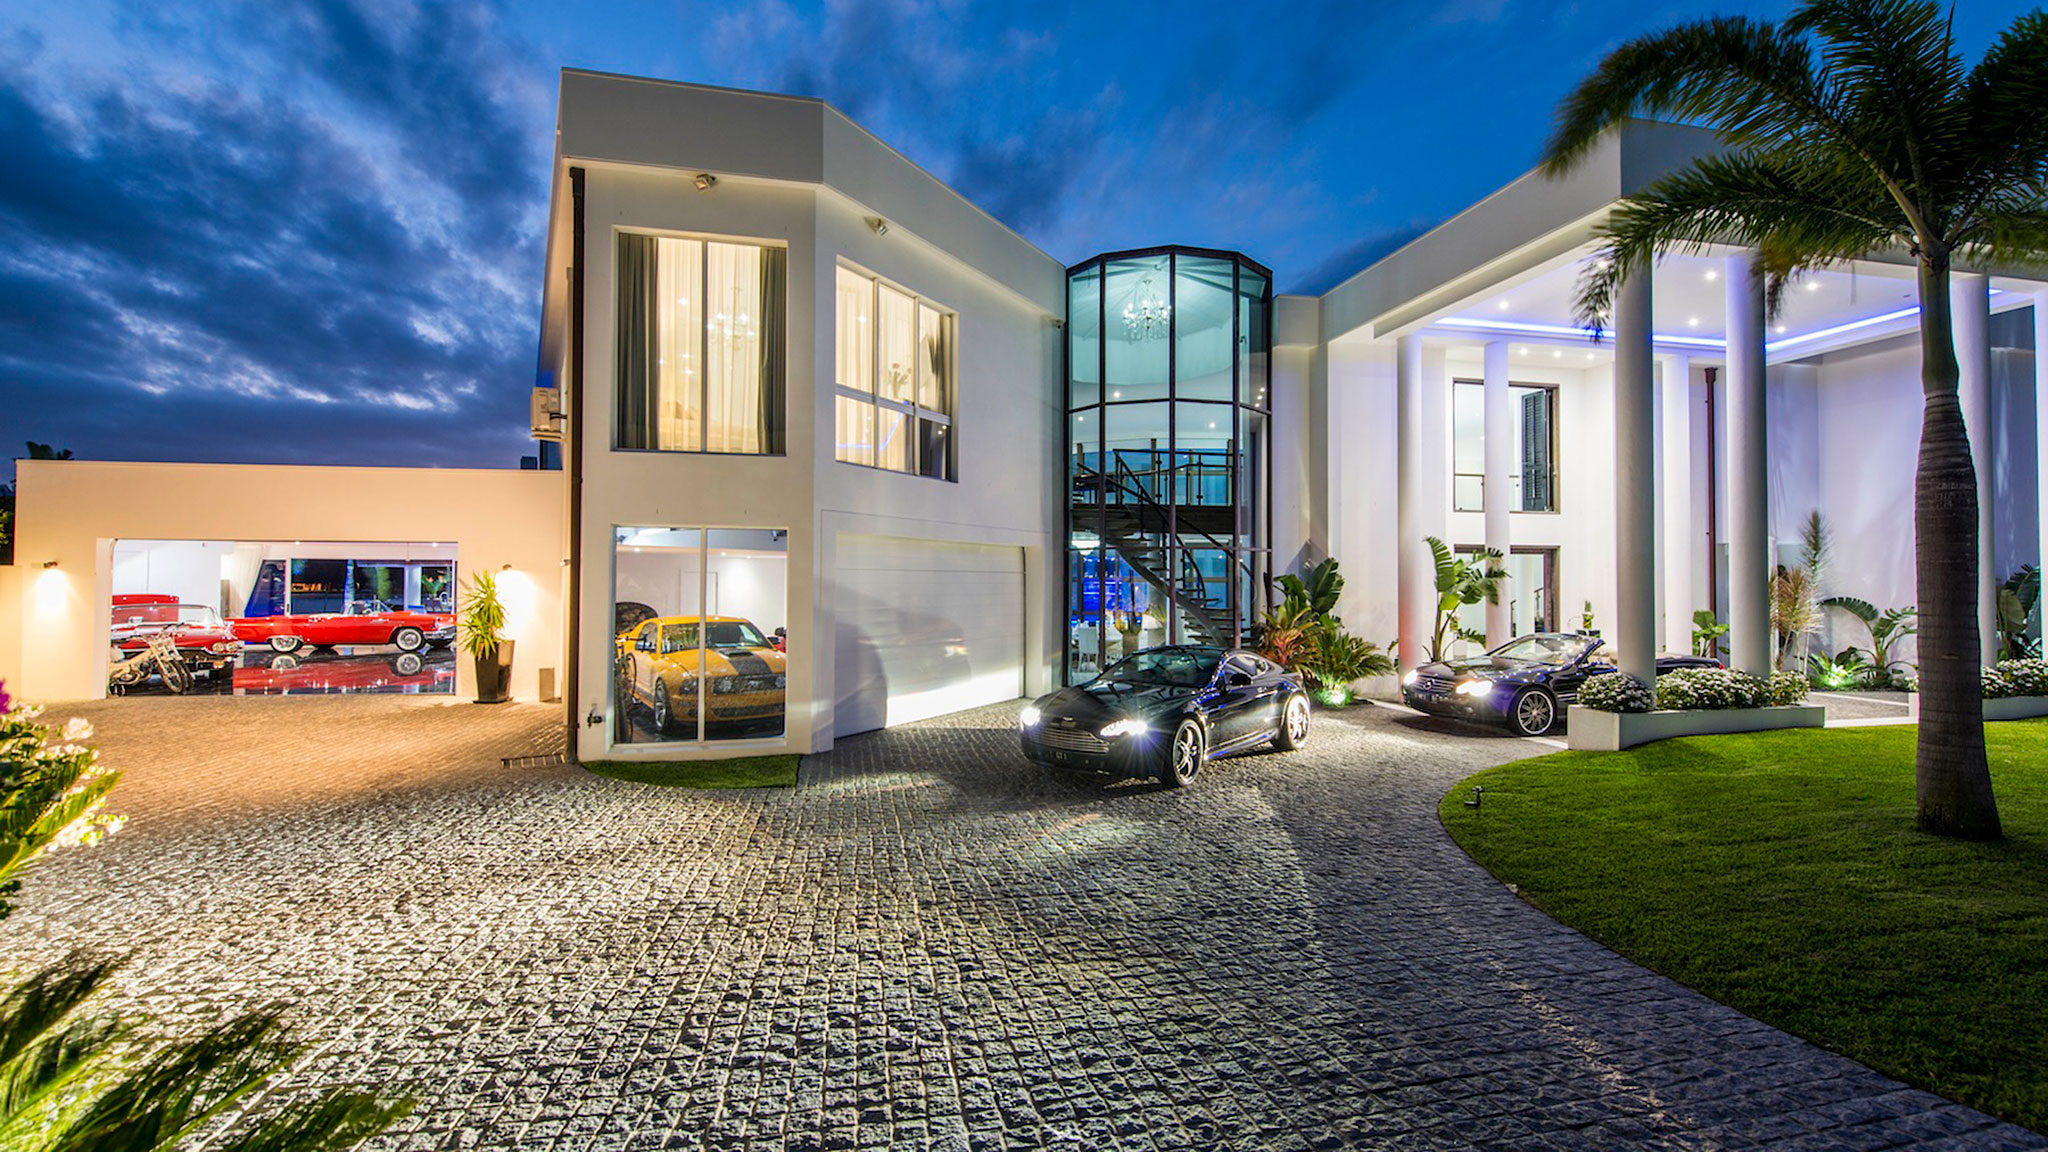 Five Houses With Super Garages For Supercars - Houses with underground garages